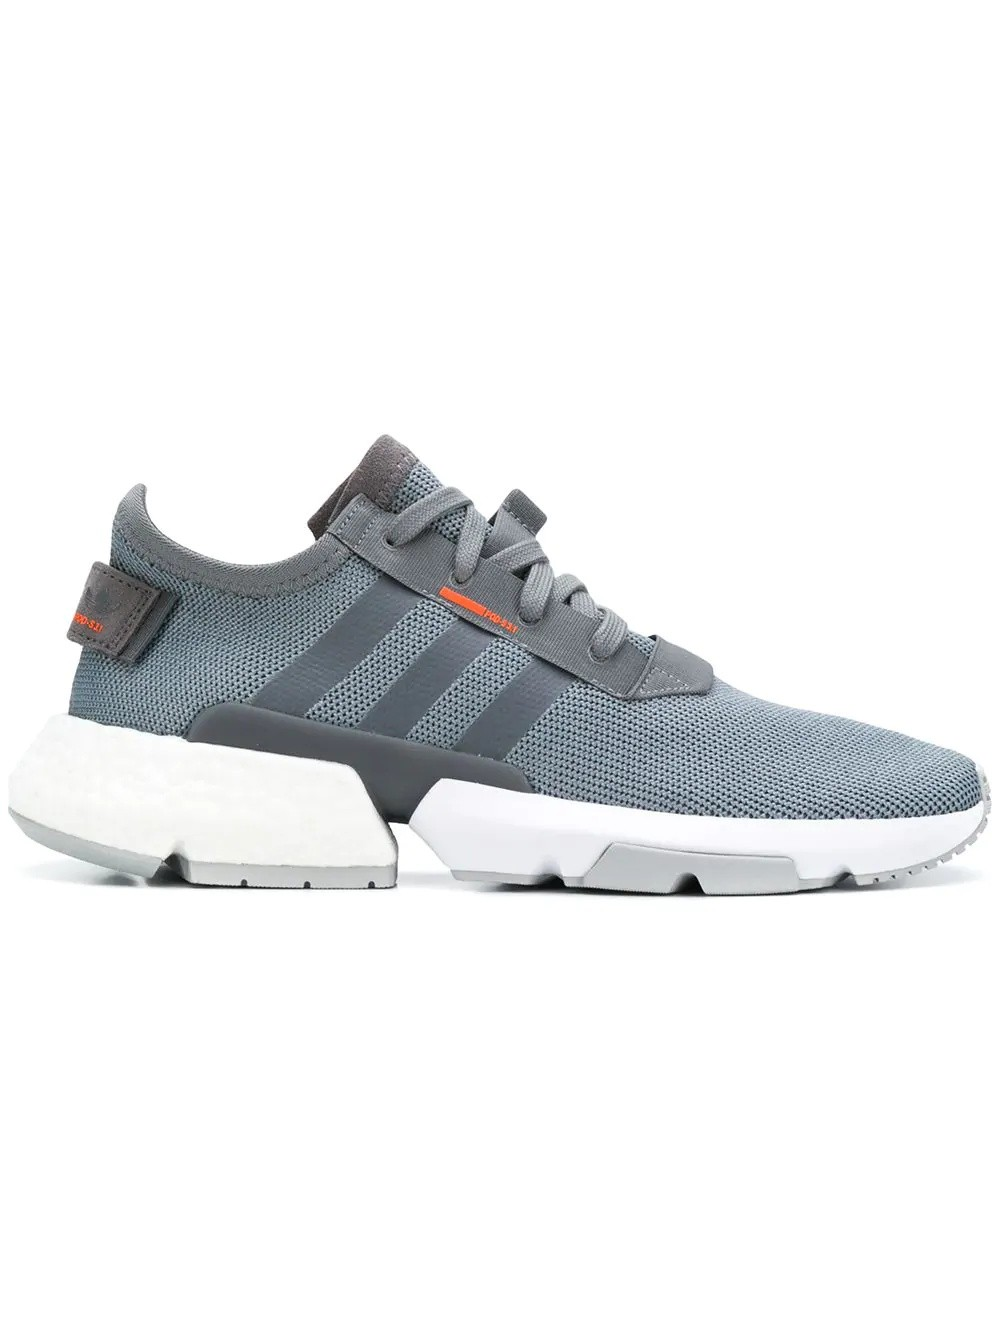 B37365 Adidas Originals POD-S3.1 Zapatillas Grises